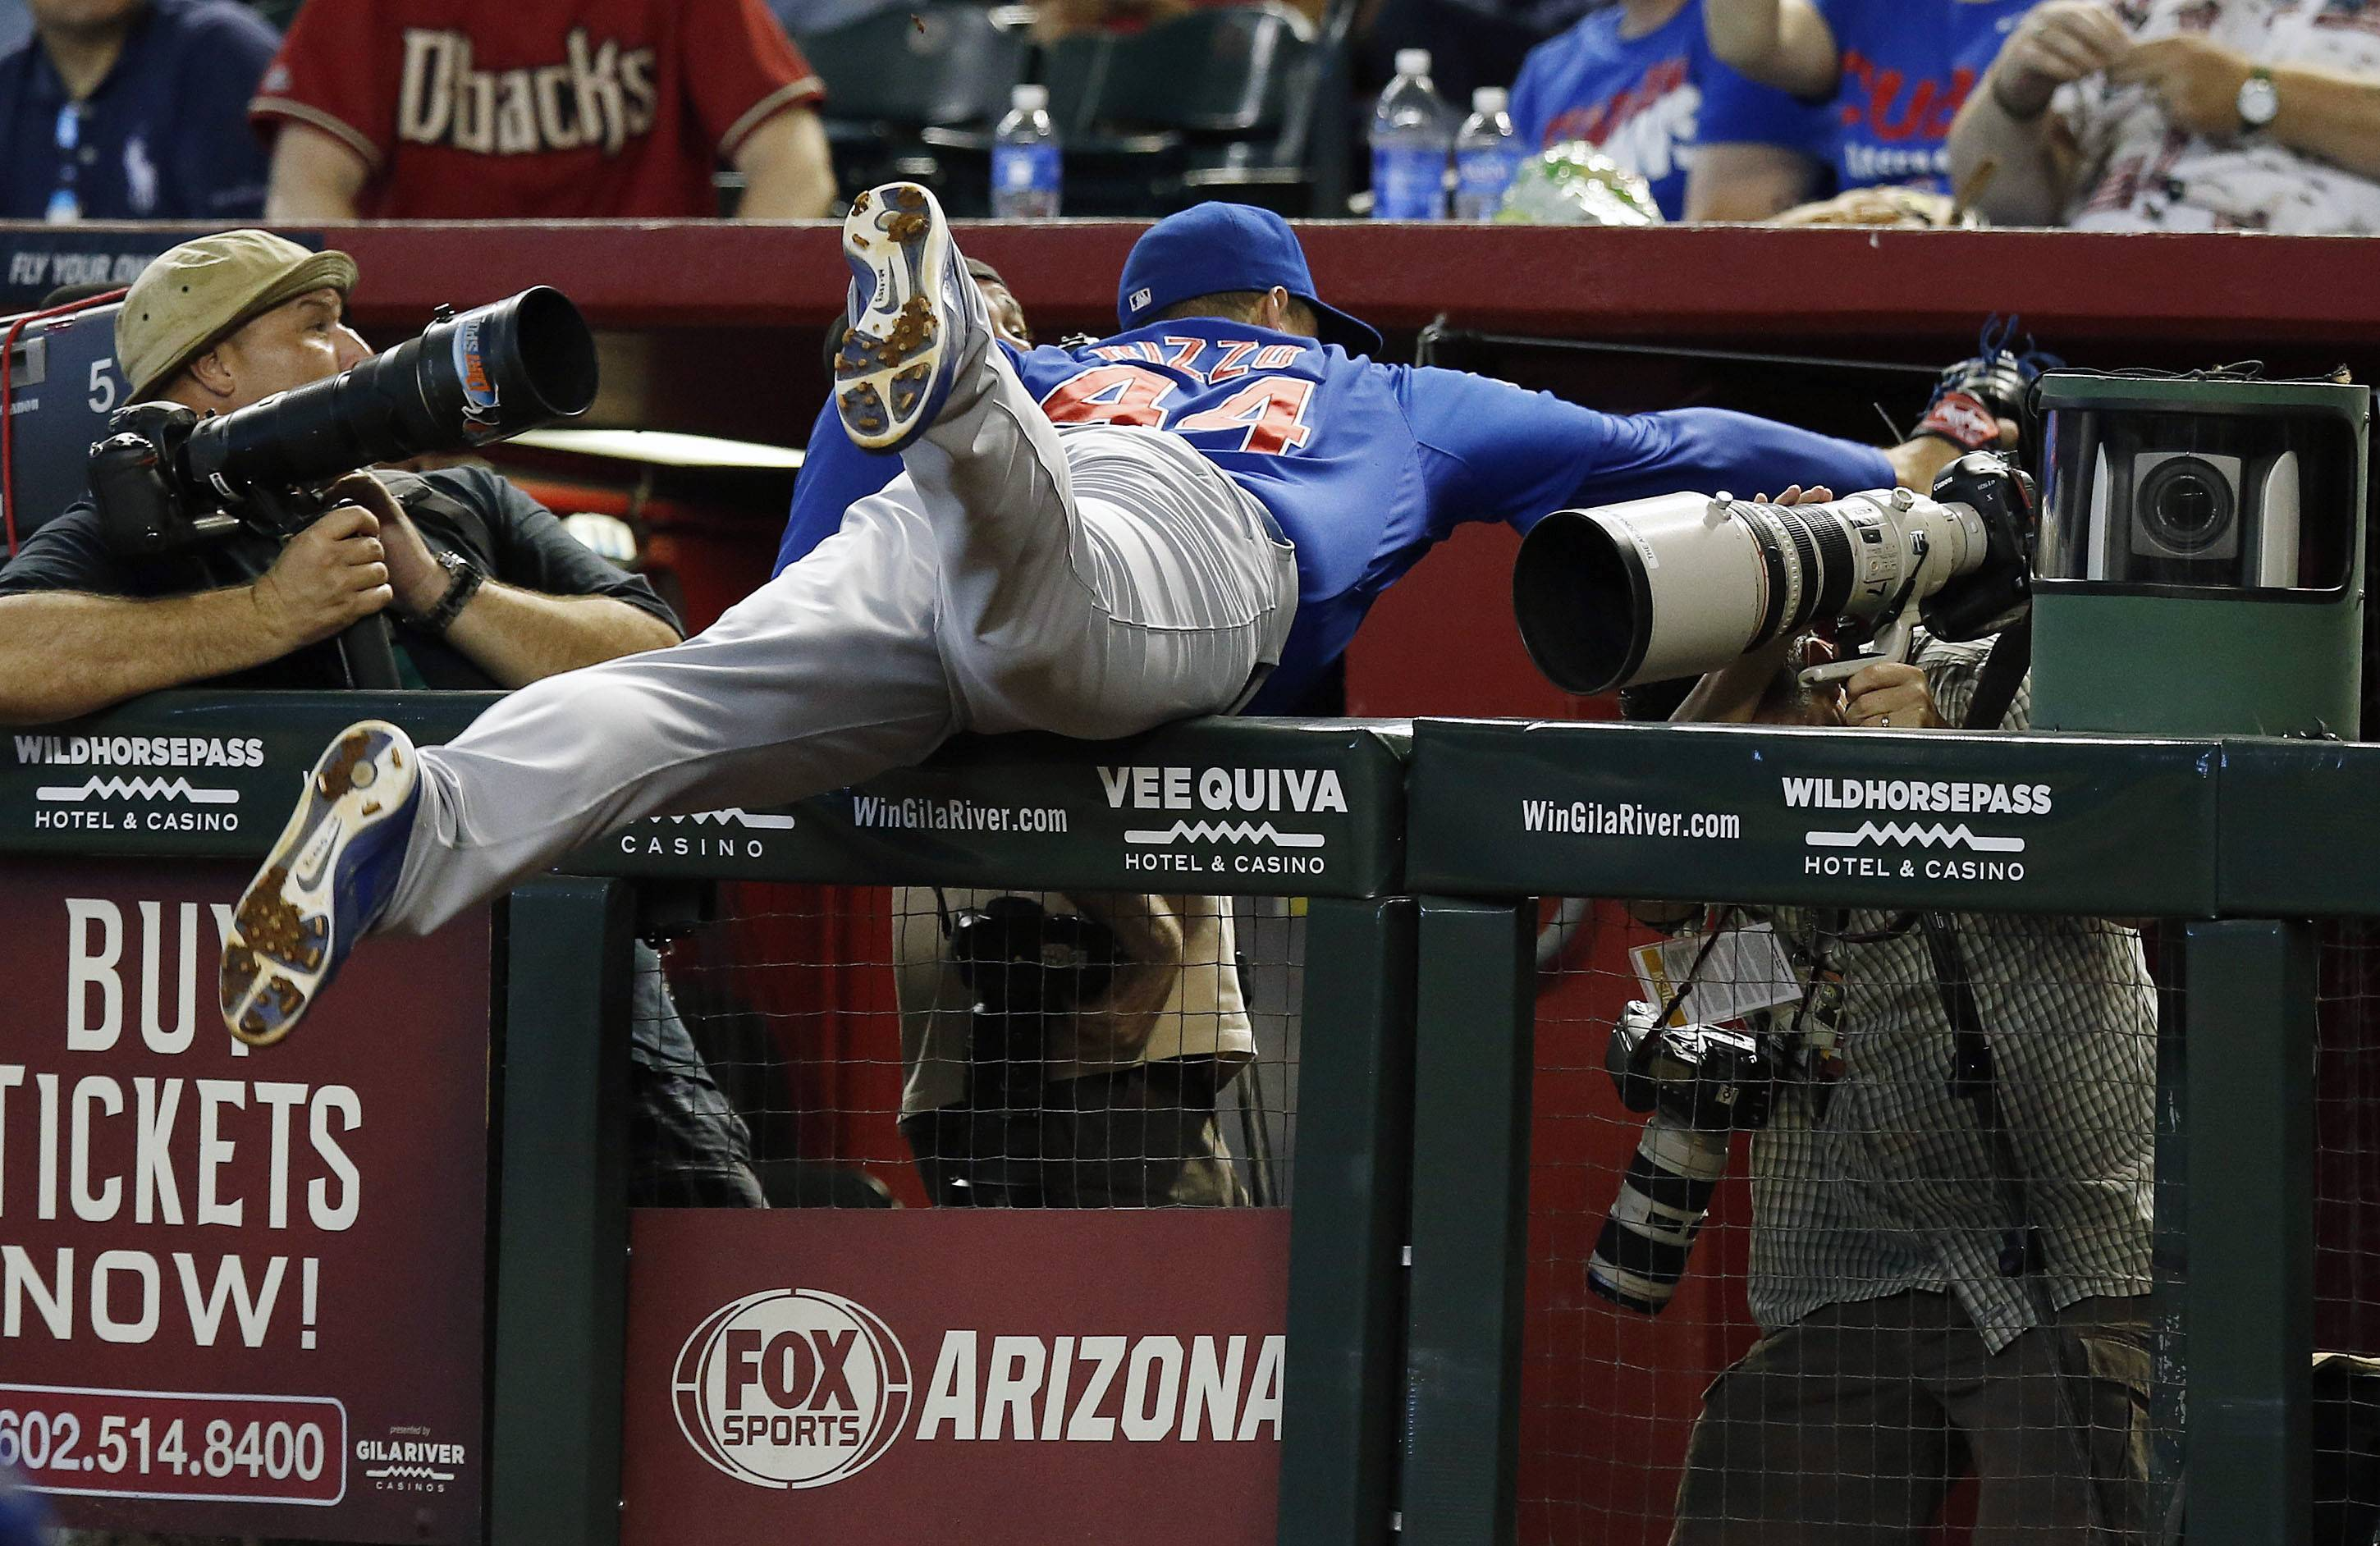 The Cubs' Anthony Rizzo makes a diving catch into the photo well on a foul ball hit by Arizona's Aaron Hill during the sixth inning Sunday in Phoenix.